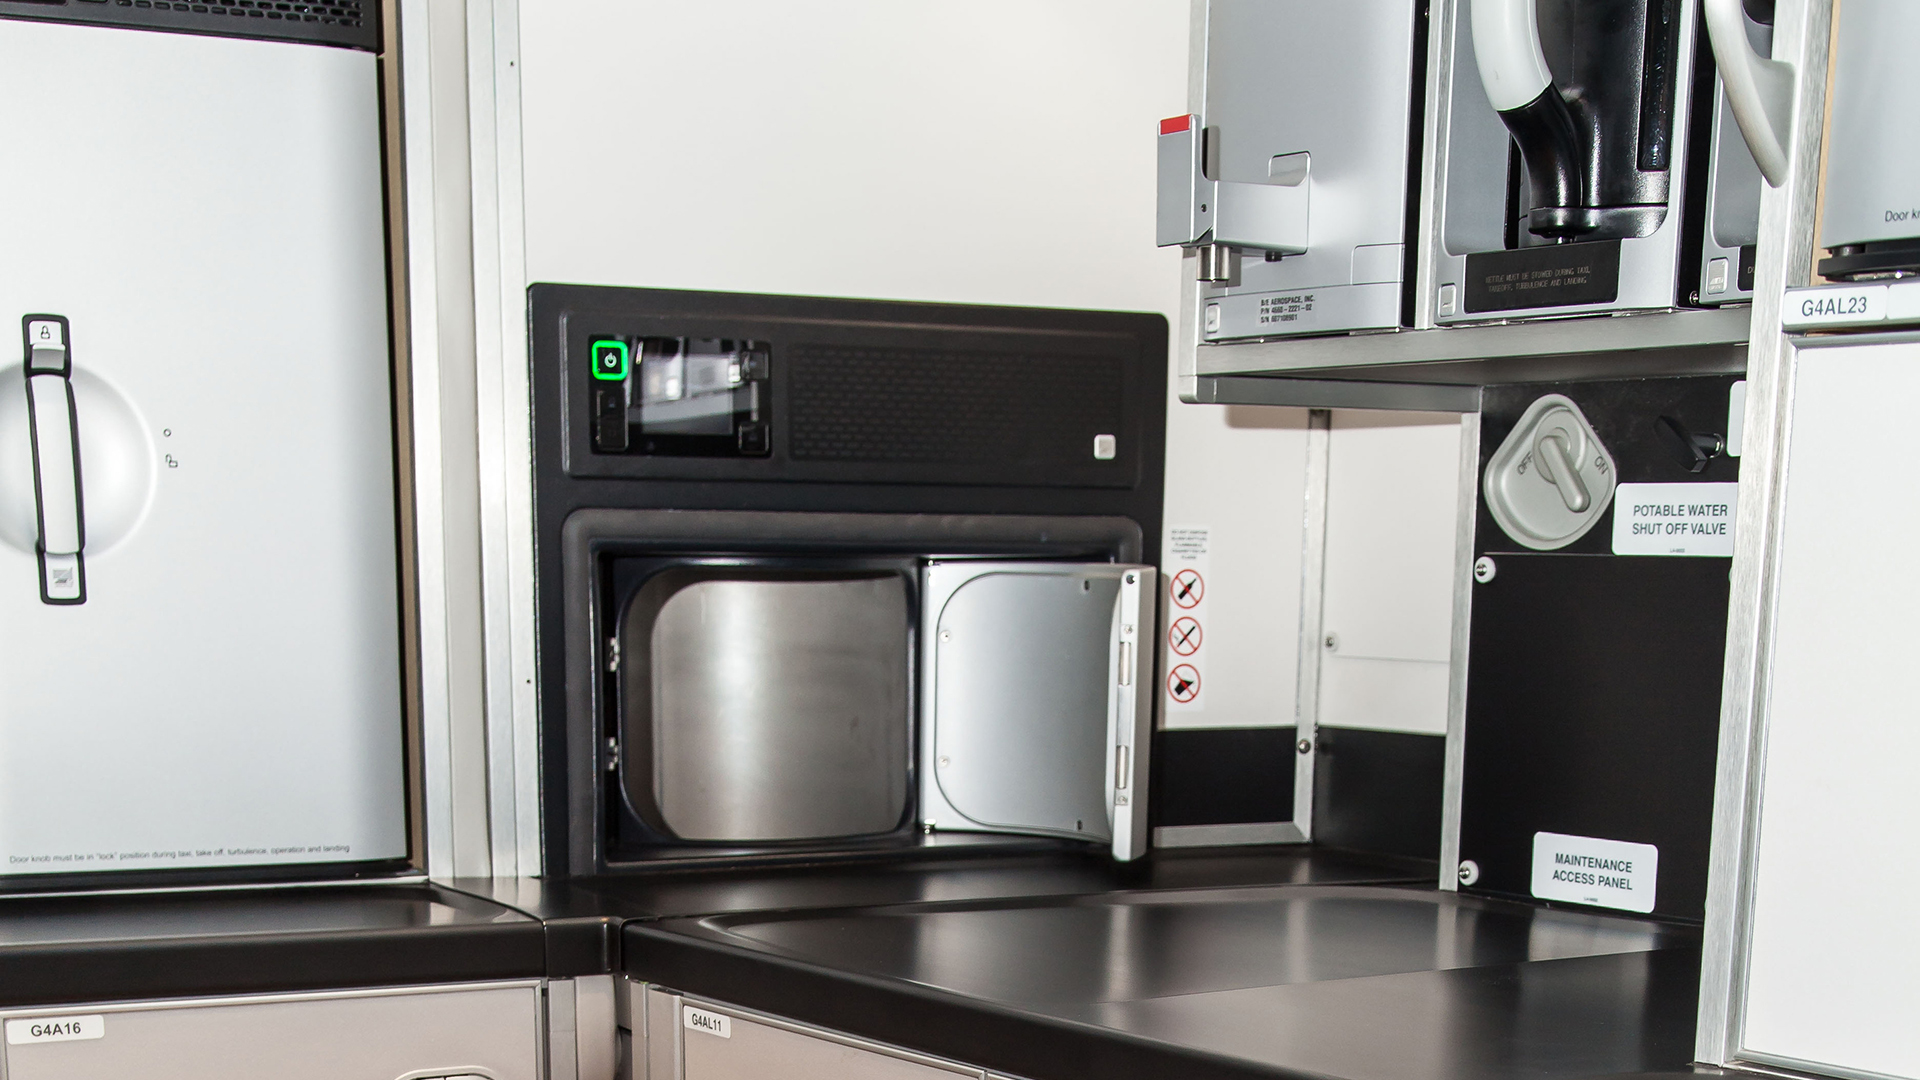 Galley Systems for A350